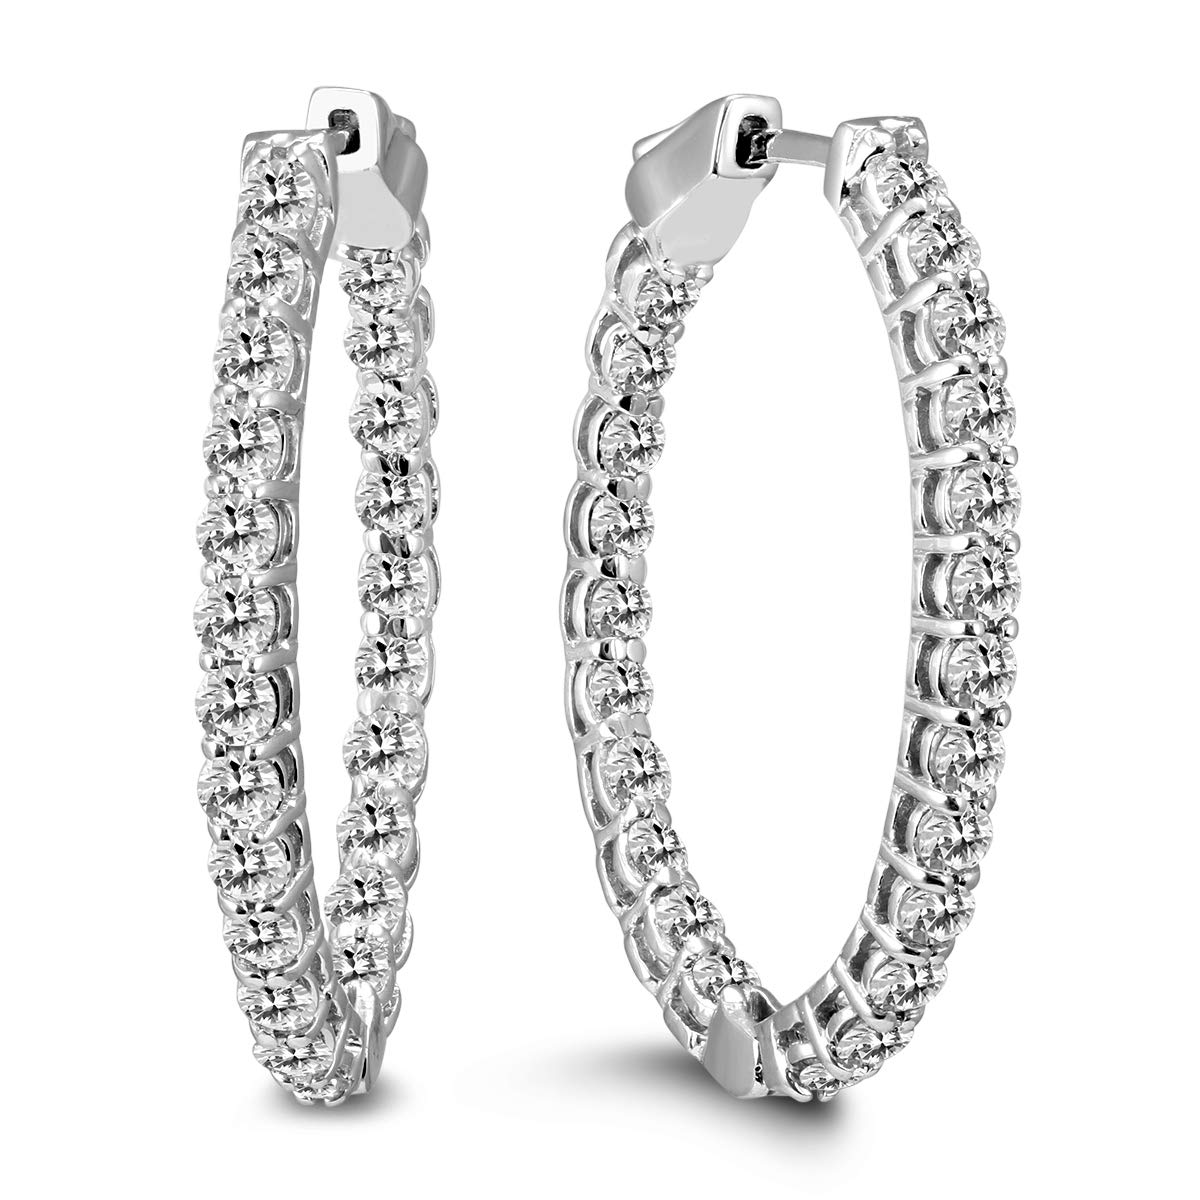 AGS Certified 3 Carat TW Oval Diamond Hoop Earrings with Push Button Locks in 14K White Gold